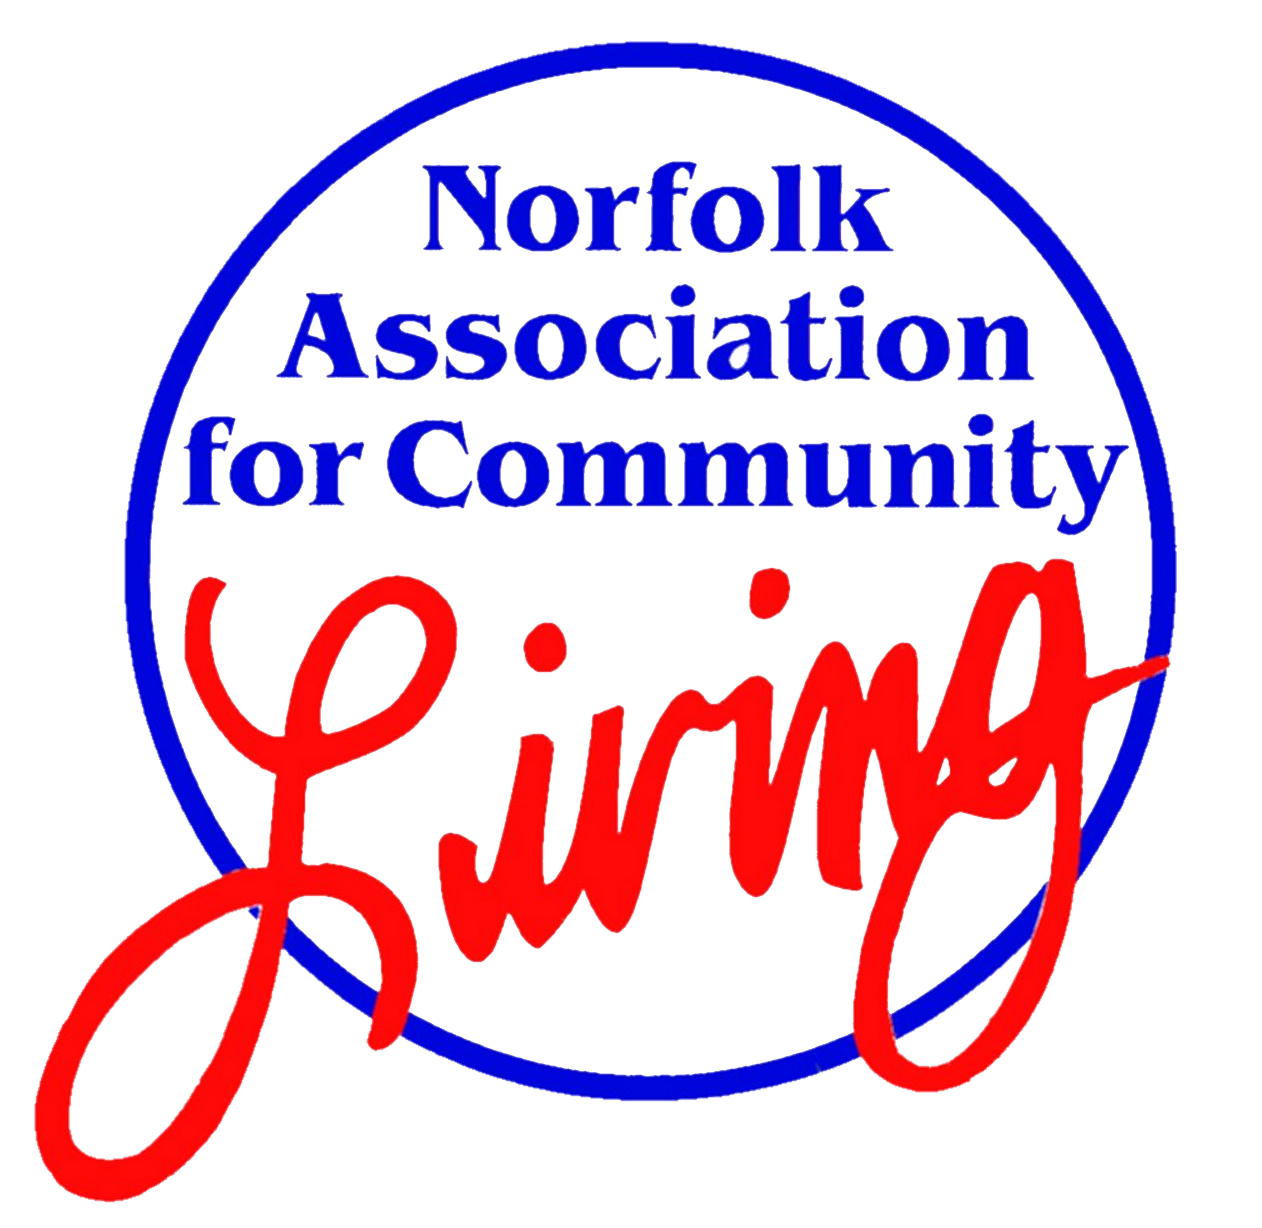 Norfolk Association for Community Living (N.A.C.L.)